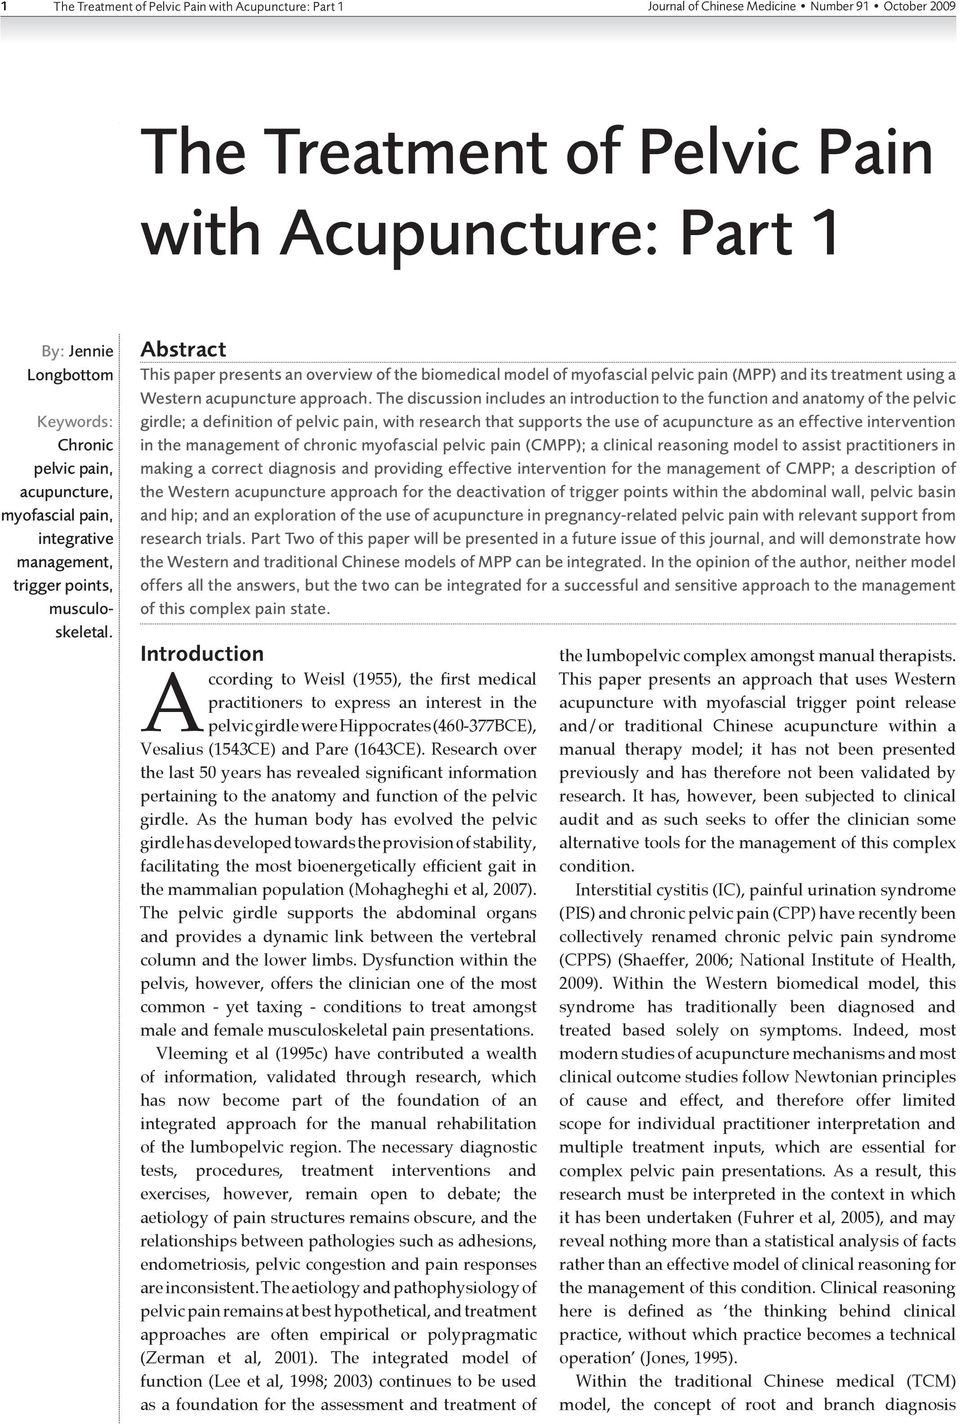 Abstract This paper presents an overview of the biomedical model of myofascial pelvic pain (MPP) and its treatment using a Western acupuncture approach.